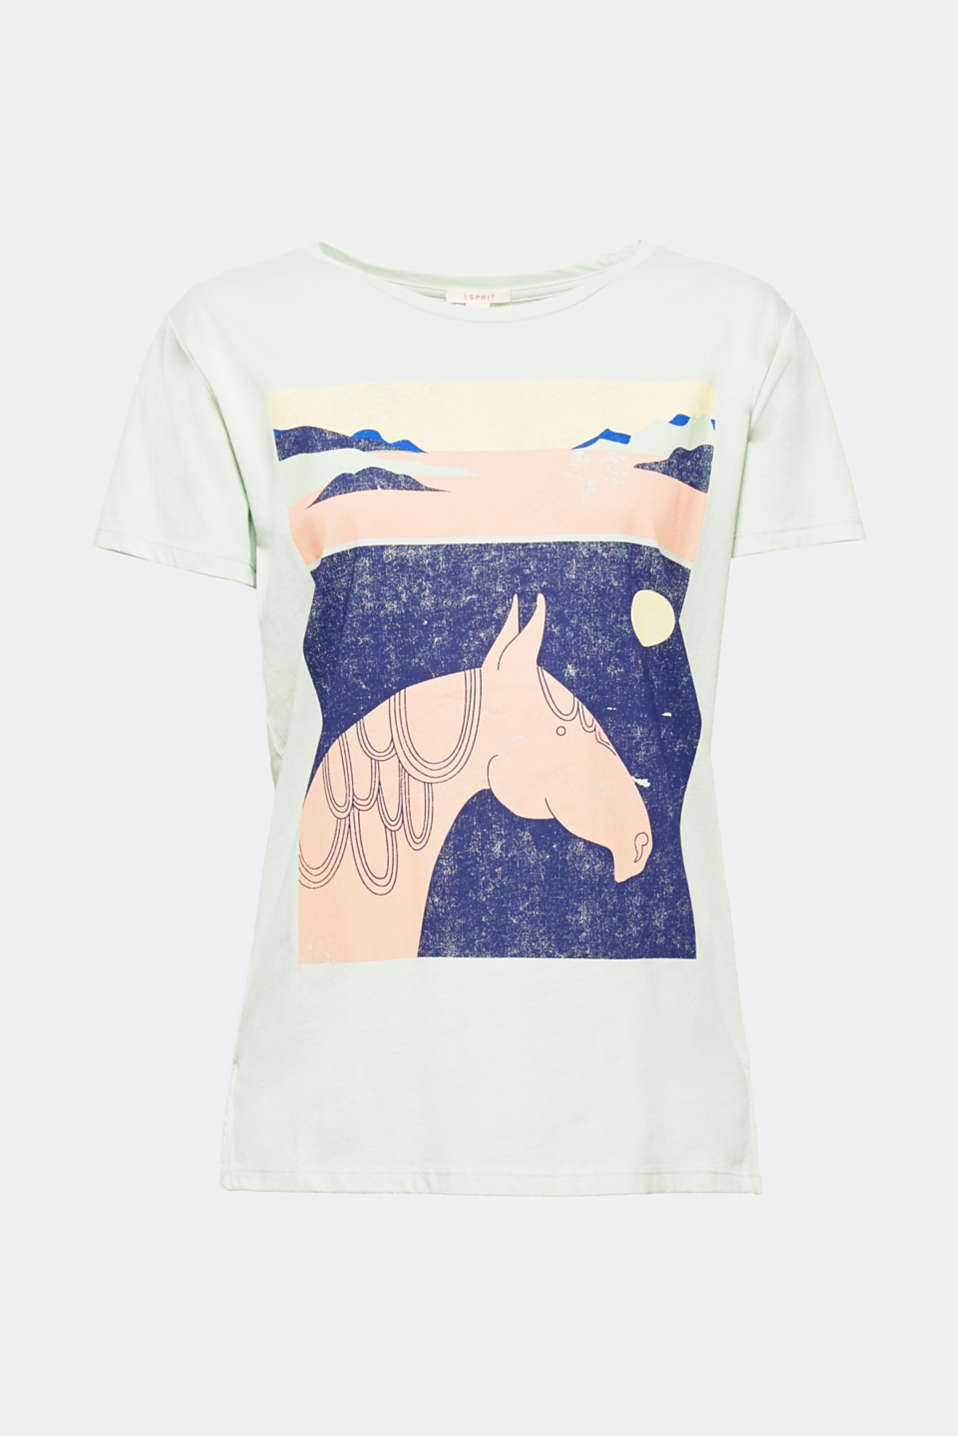 This soft slub T-shirt in a casual vintage style is artistic, decorative and striking thanks to the geometric print!